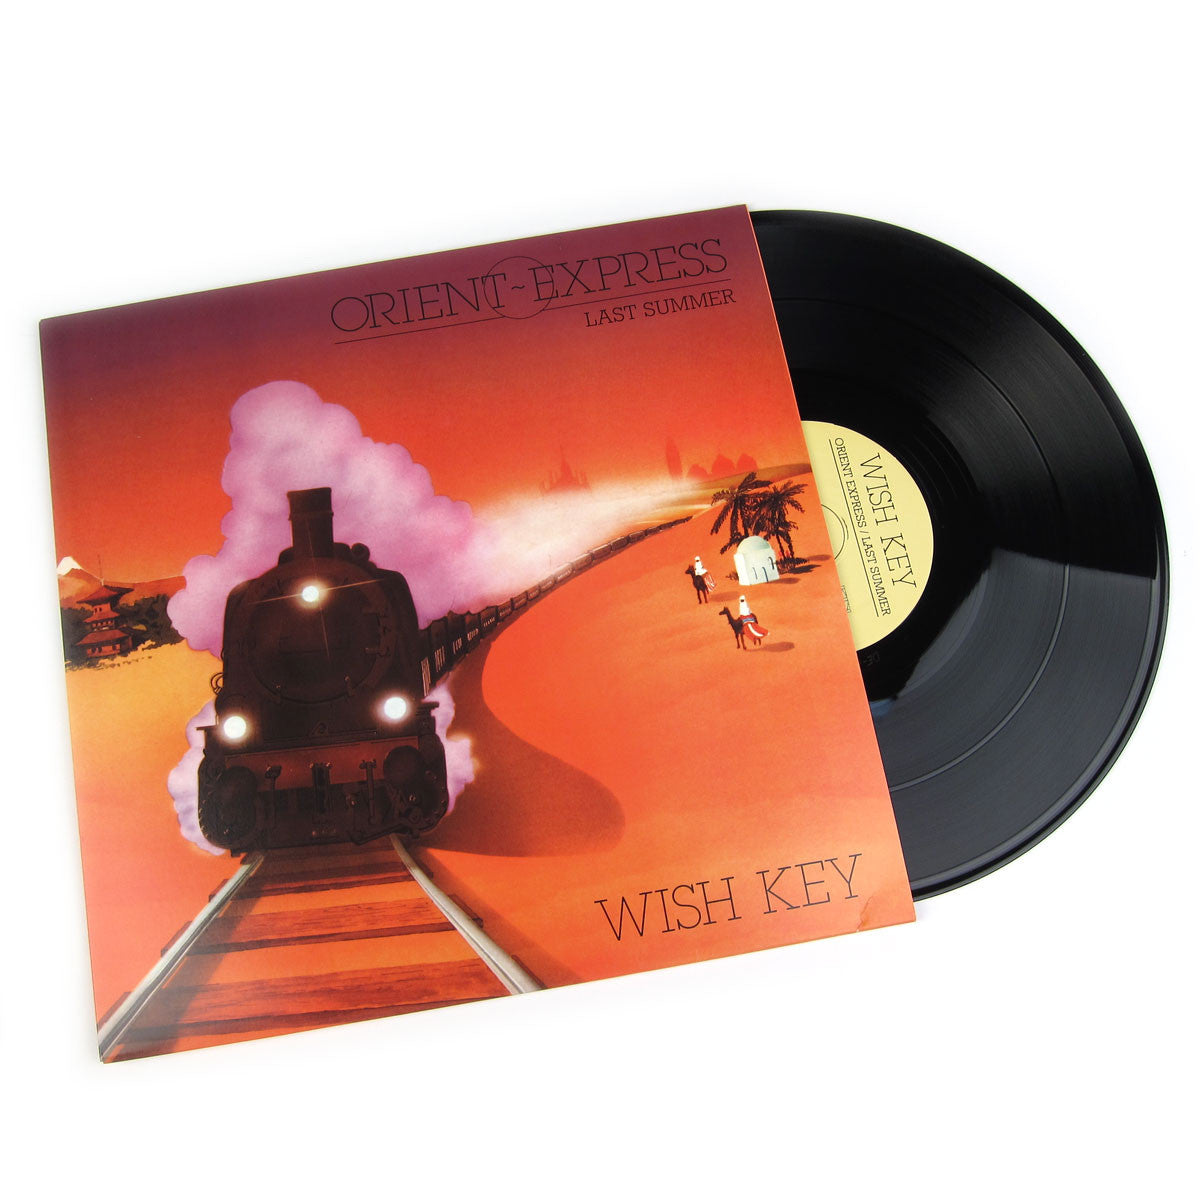 Wish Key: Orient Express / Last Summer Vinyl 12""